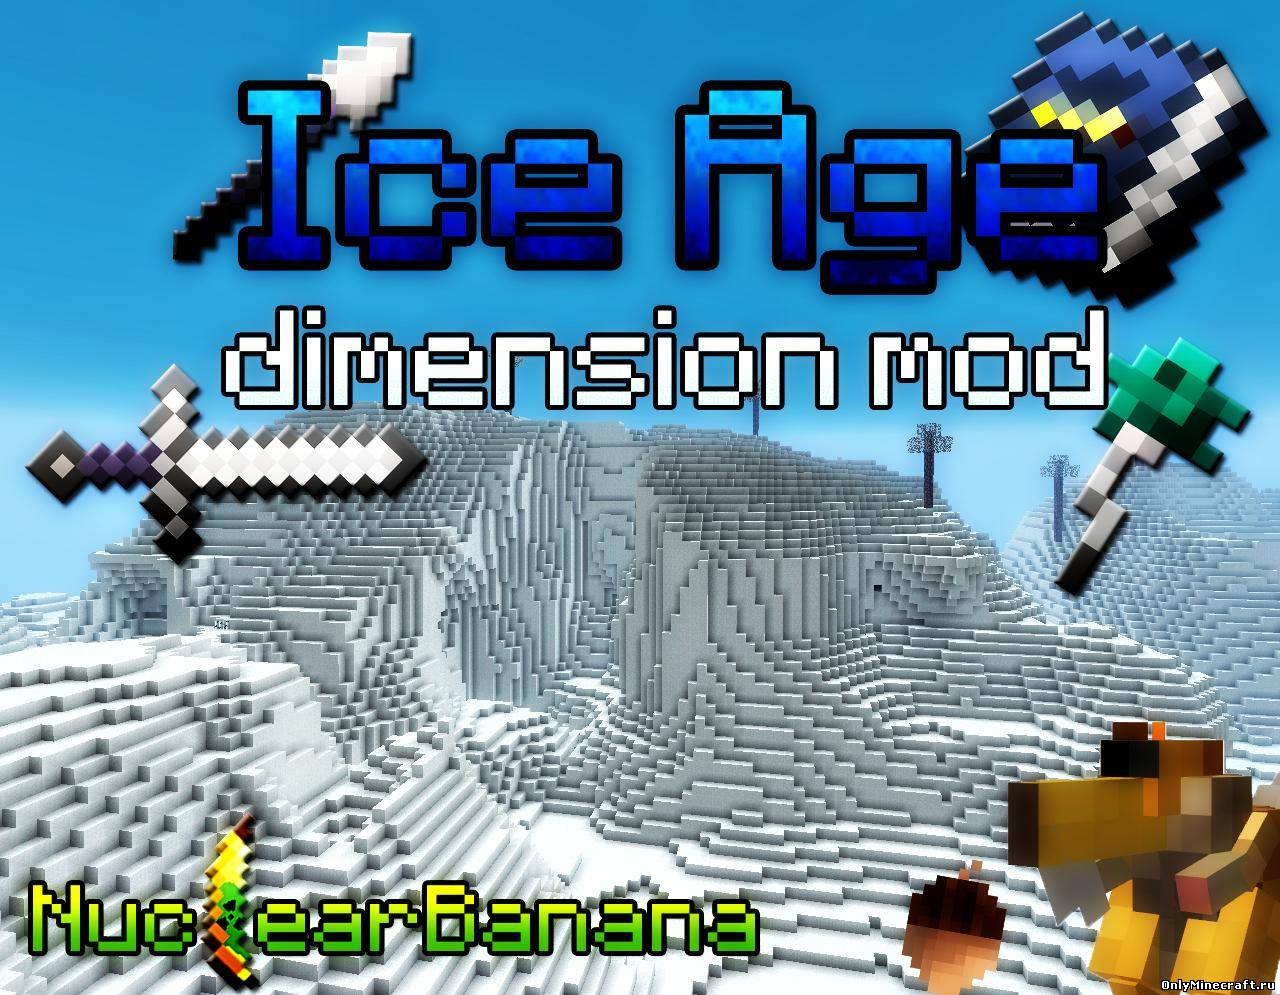 IceAge Dimension